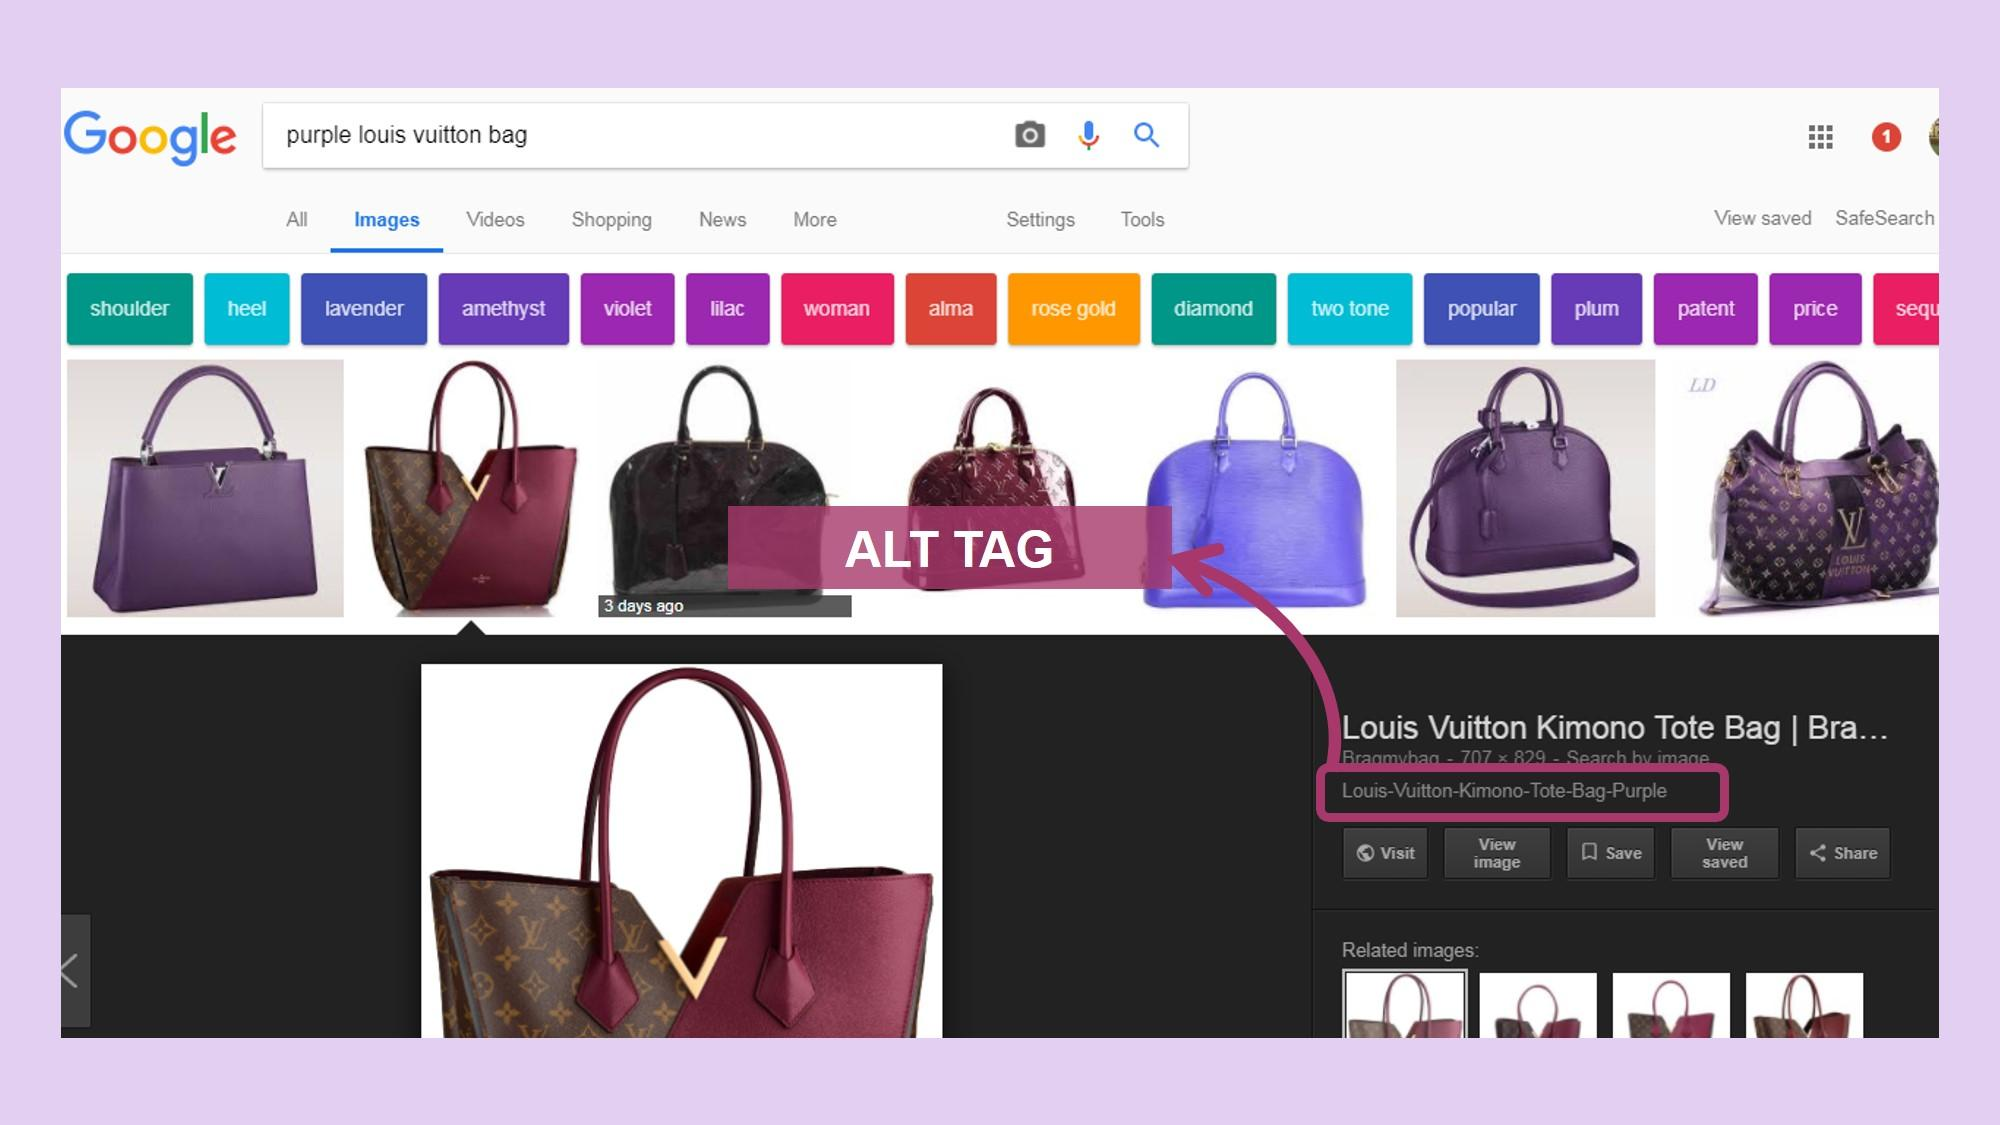 Image Search Results for Louis Vuitton purses